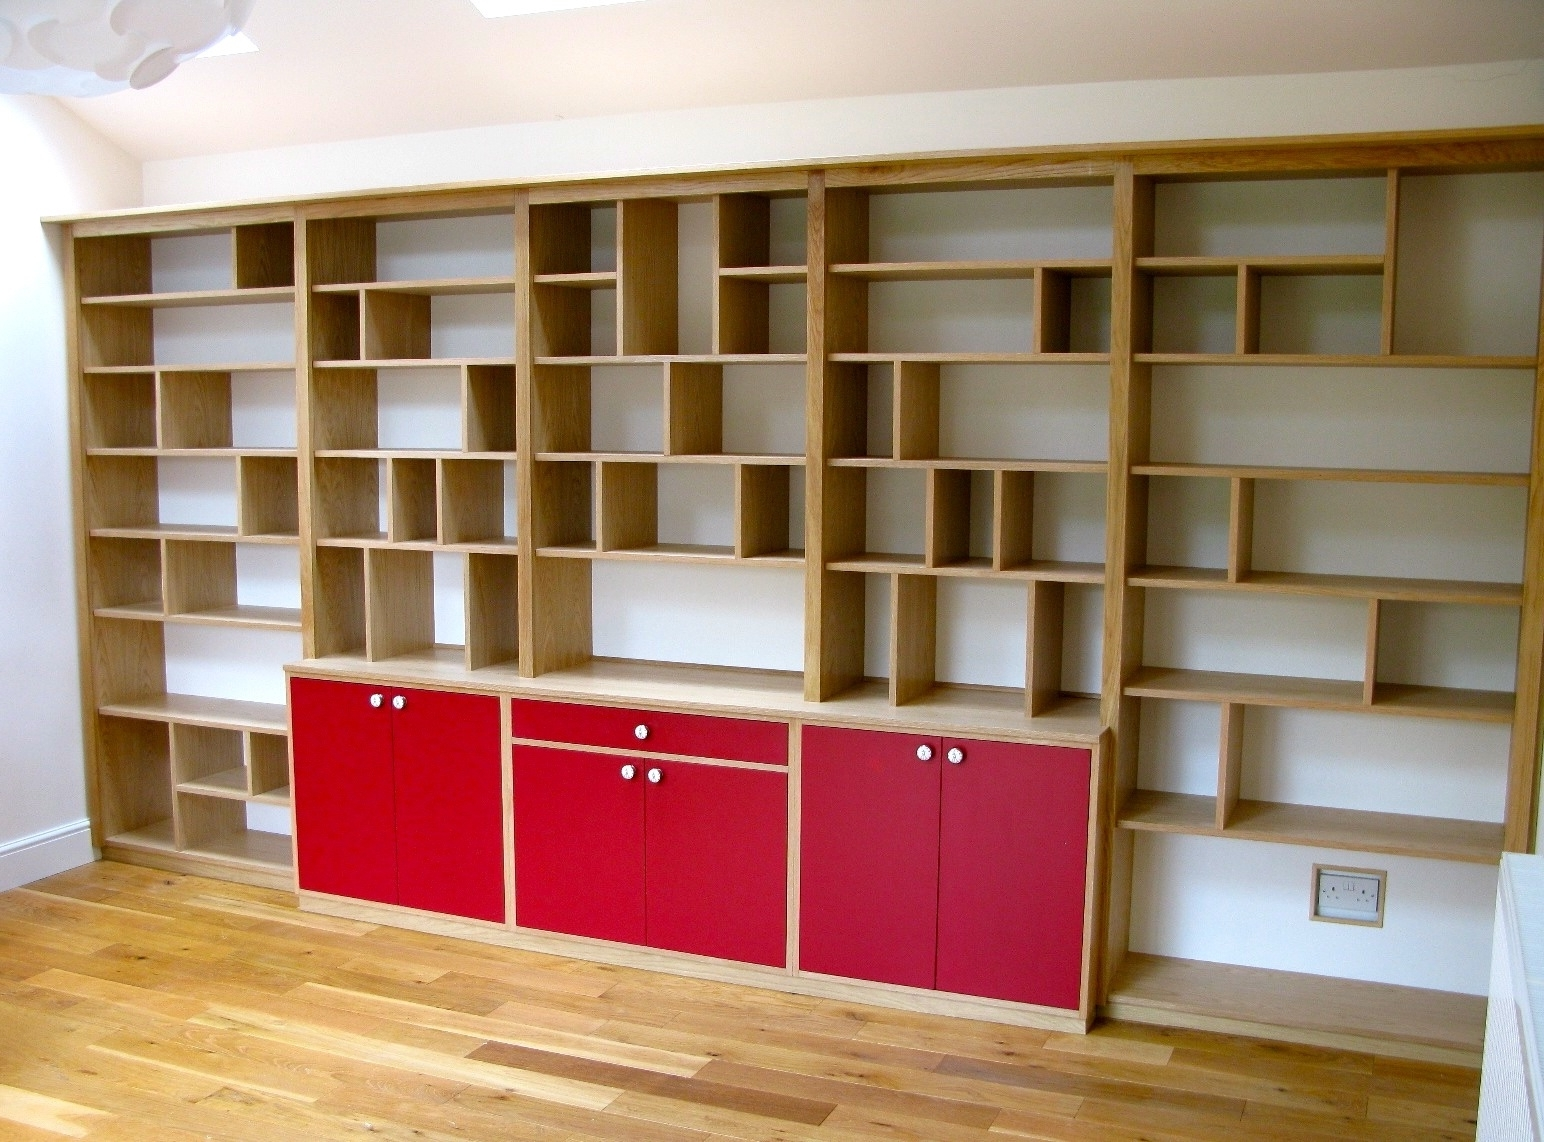 Fashionable Oak Shelving – Shelves Ideas With Book Shelving Systems (View 11 of 15)